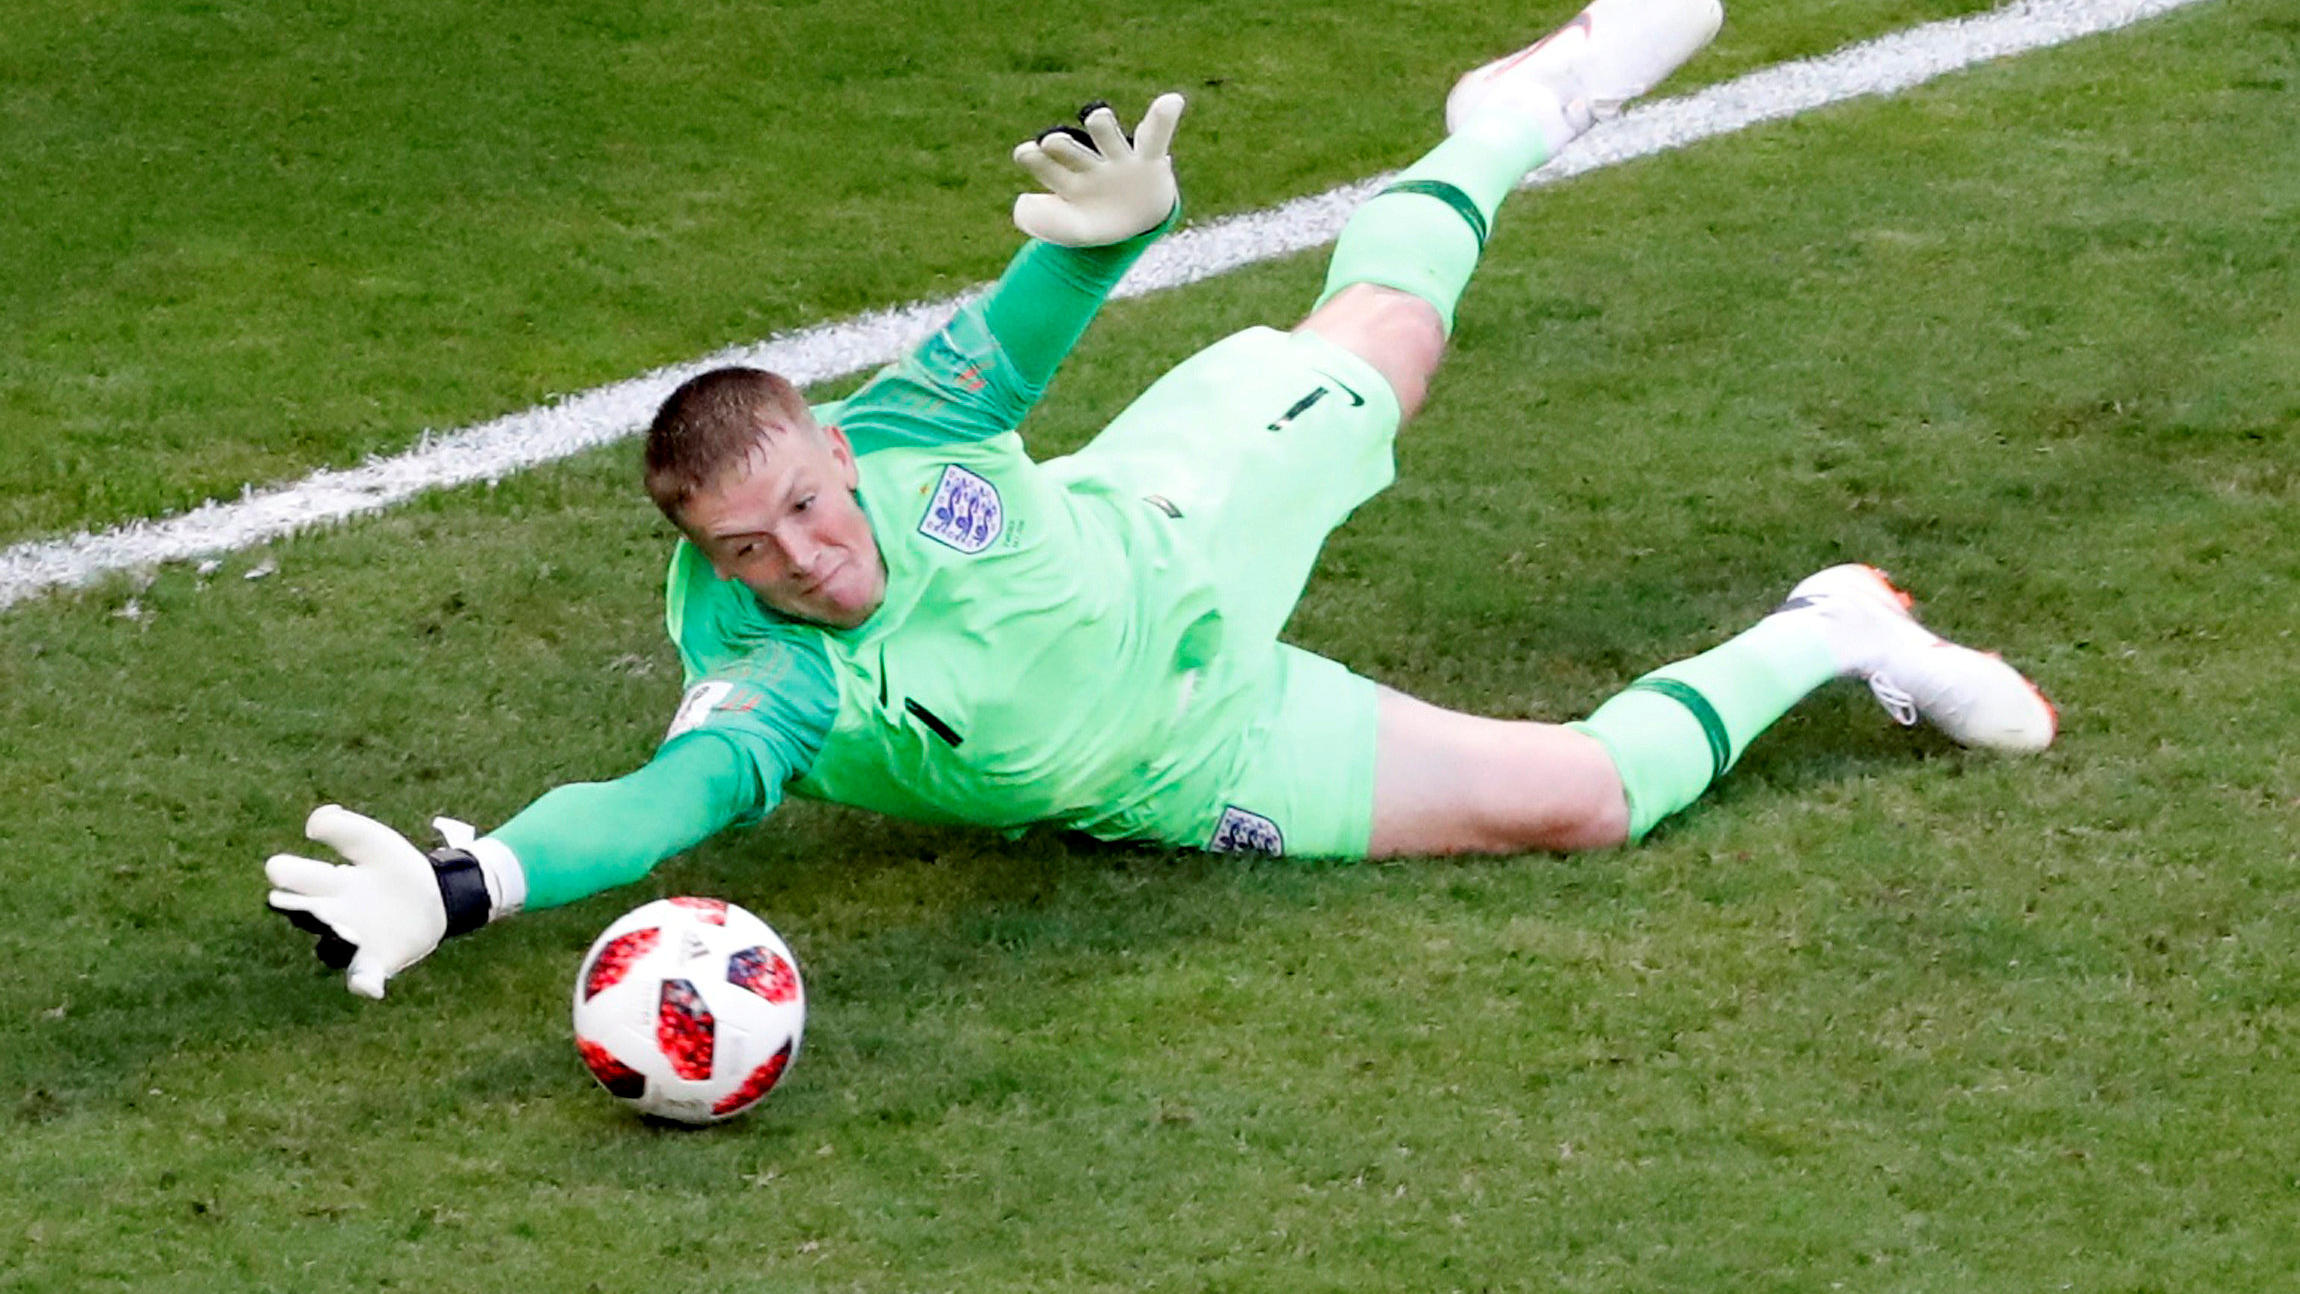 Soccer Football - World Cup - Quarter Final - Sweden vs England - Samara Arena, Samara, Russia - July 7, 2018  England's Jordan Pickford makes a save  REUTERS/David Gray     TPX IMAGES OF THE DAY